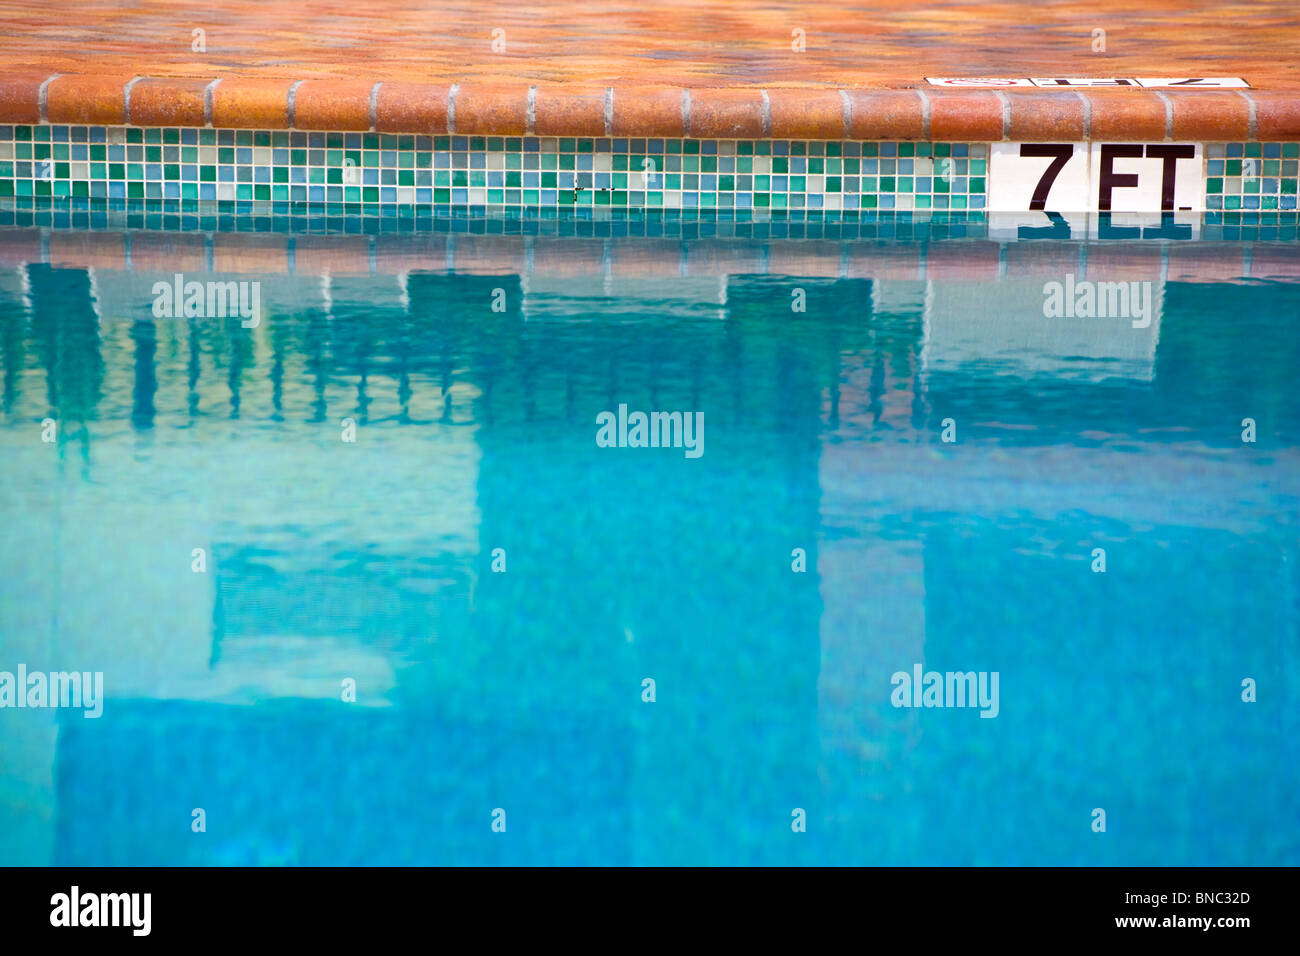 7 Seven Feet In A Swimming Pool Depth Stock Photo Royalty Free Image 30383989 Alamy